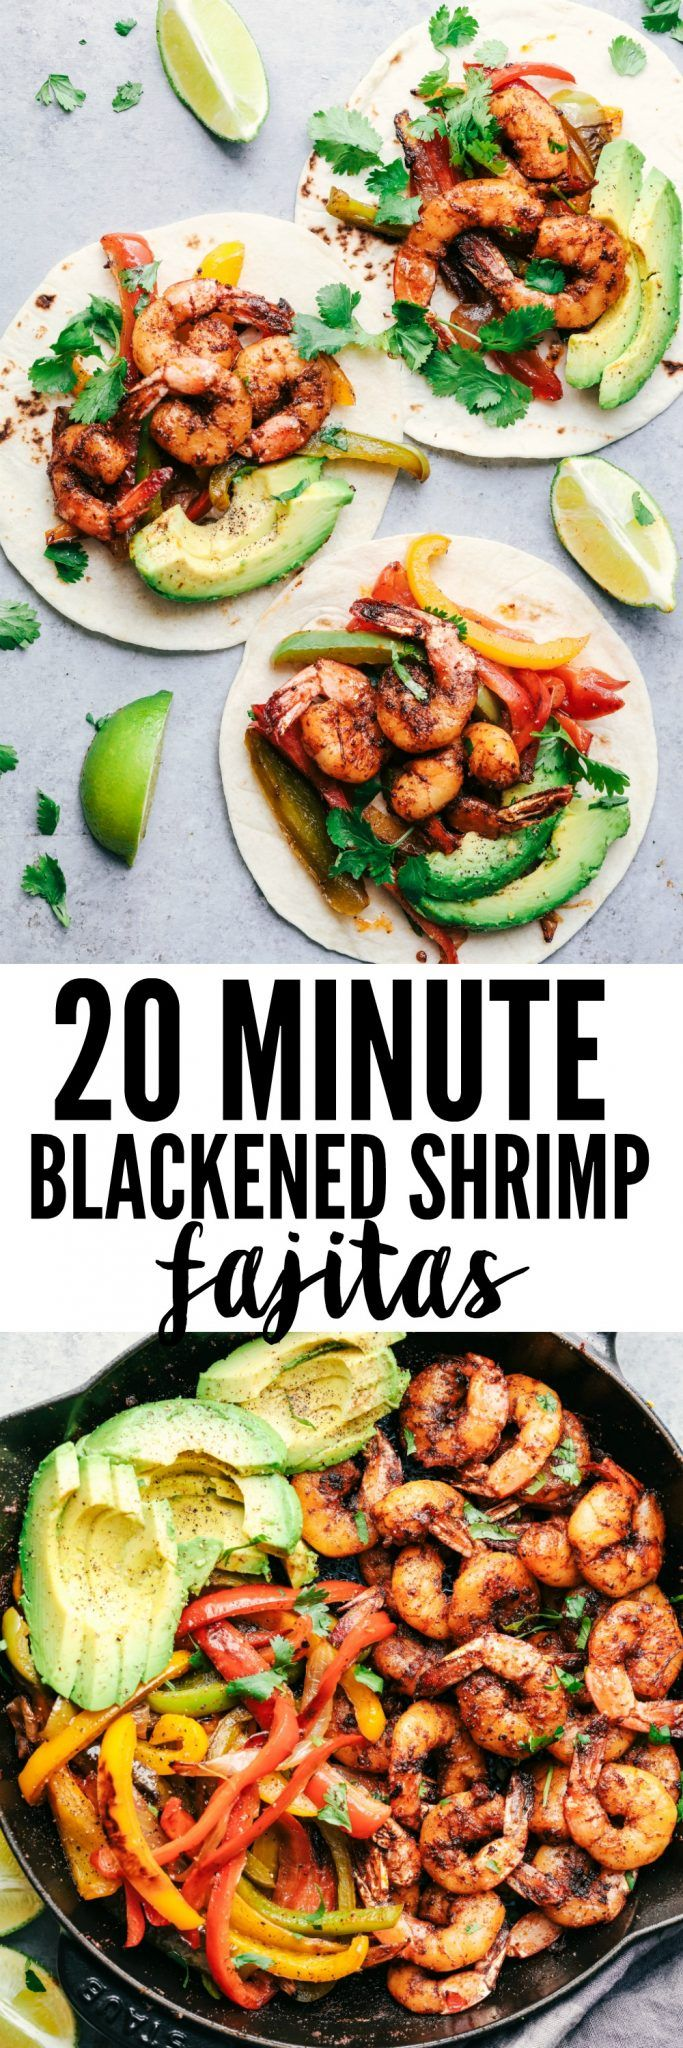 20 Minute Skillet Blackened Shrimp Fajitas are such an easy and flavorful meal packed with blackened shrimp, peppers and onion. ...